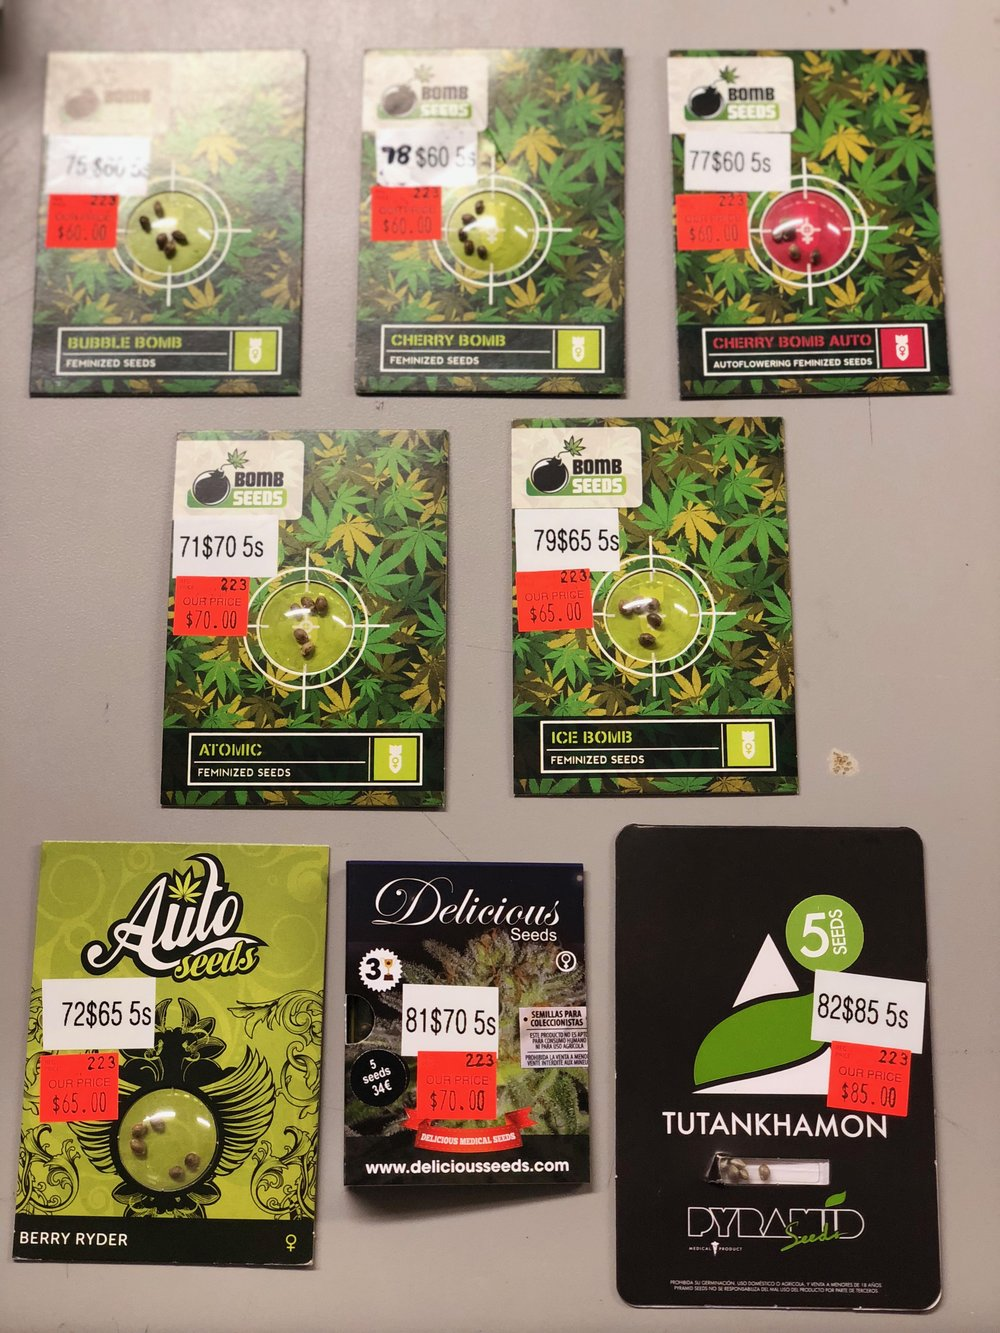 Bomb Seeds, Delicious Seeds, Pyramid Seeds, Canuk, Auto Seeds in stock